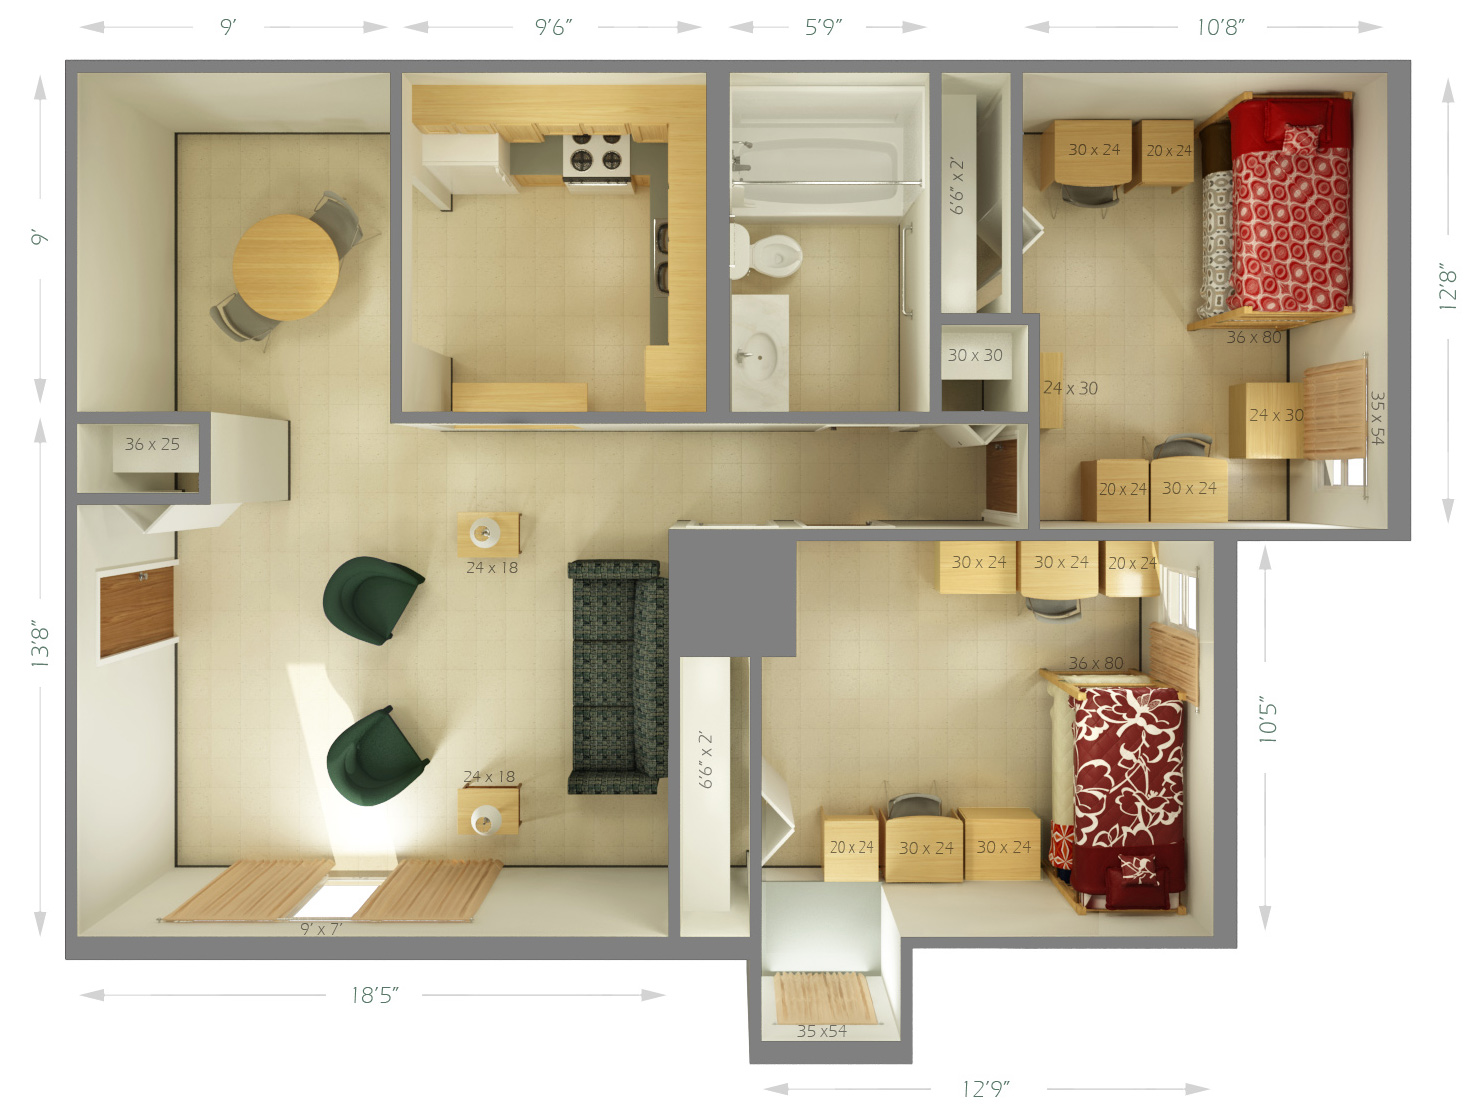 size of a living room simple interior images university housing cougar village dimensions siue 2 shared bedrooms